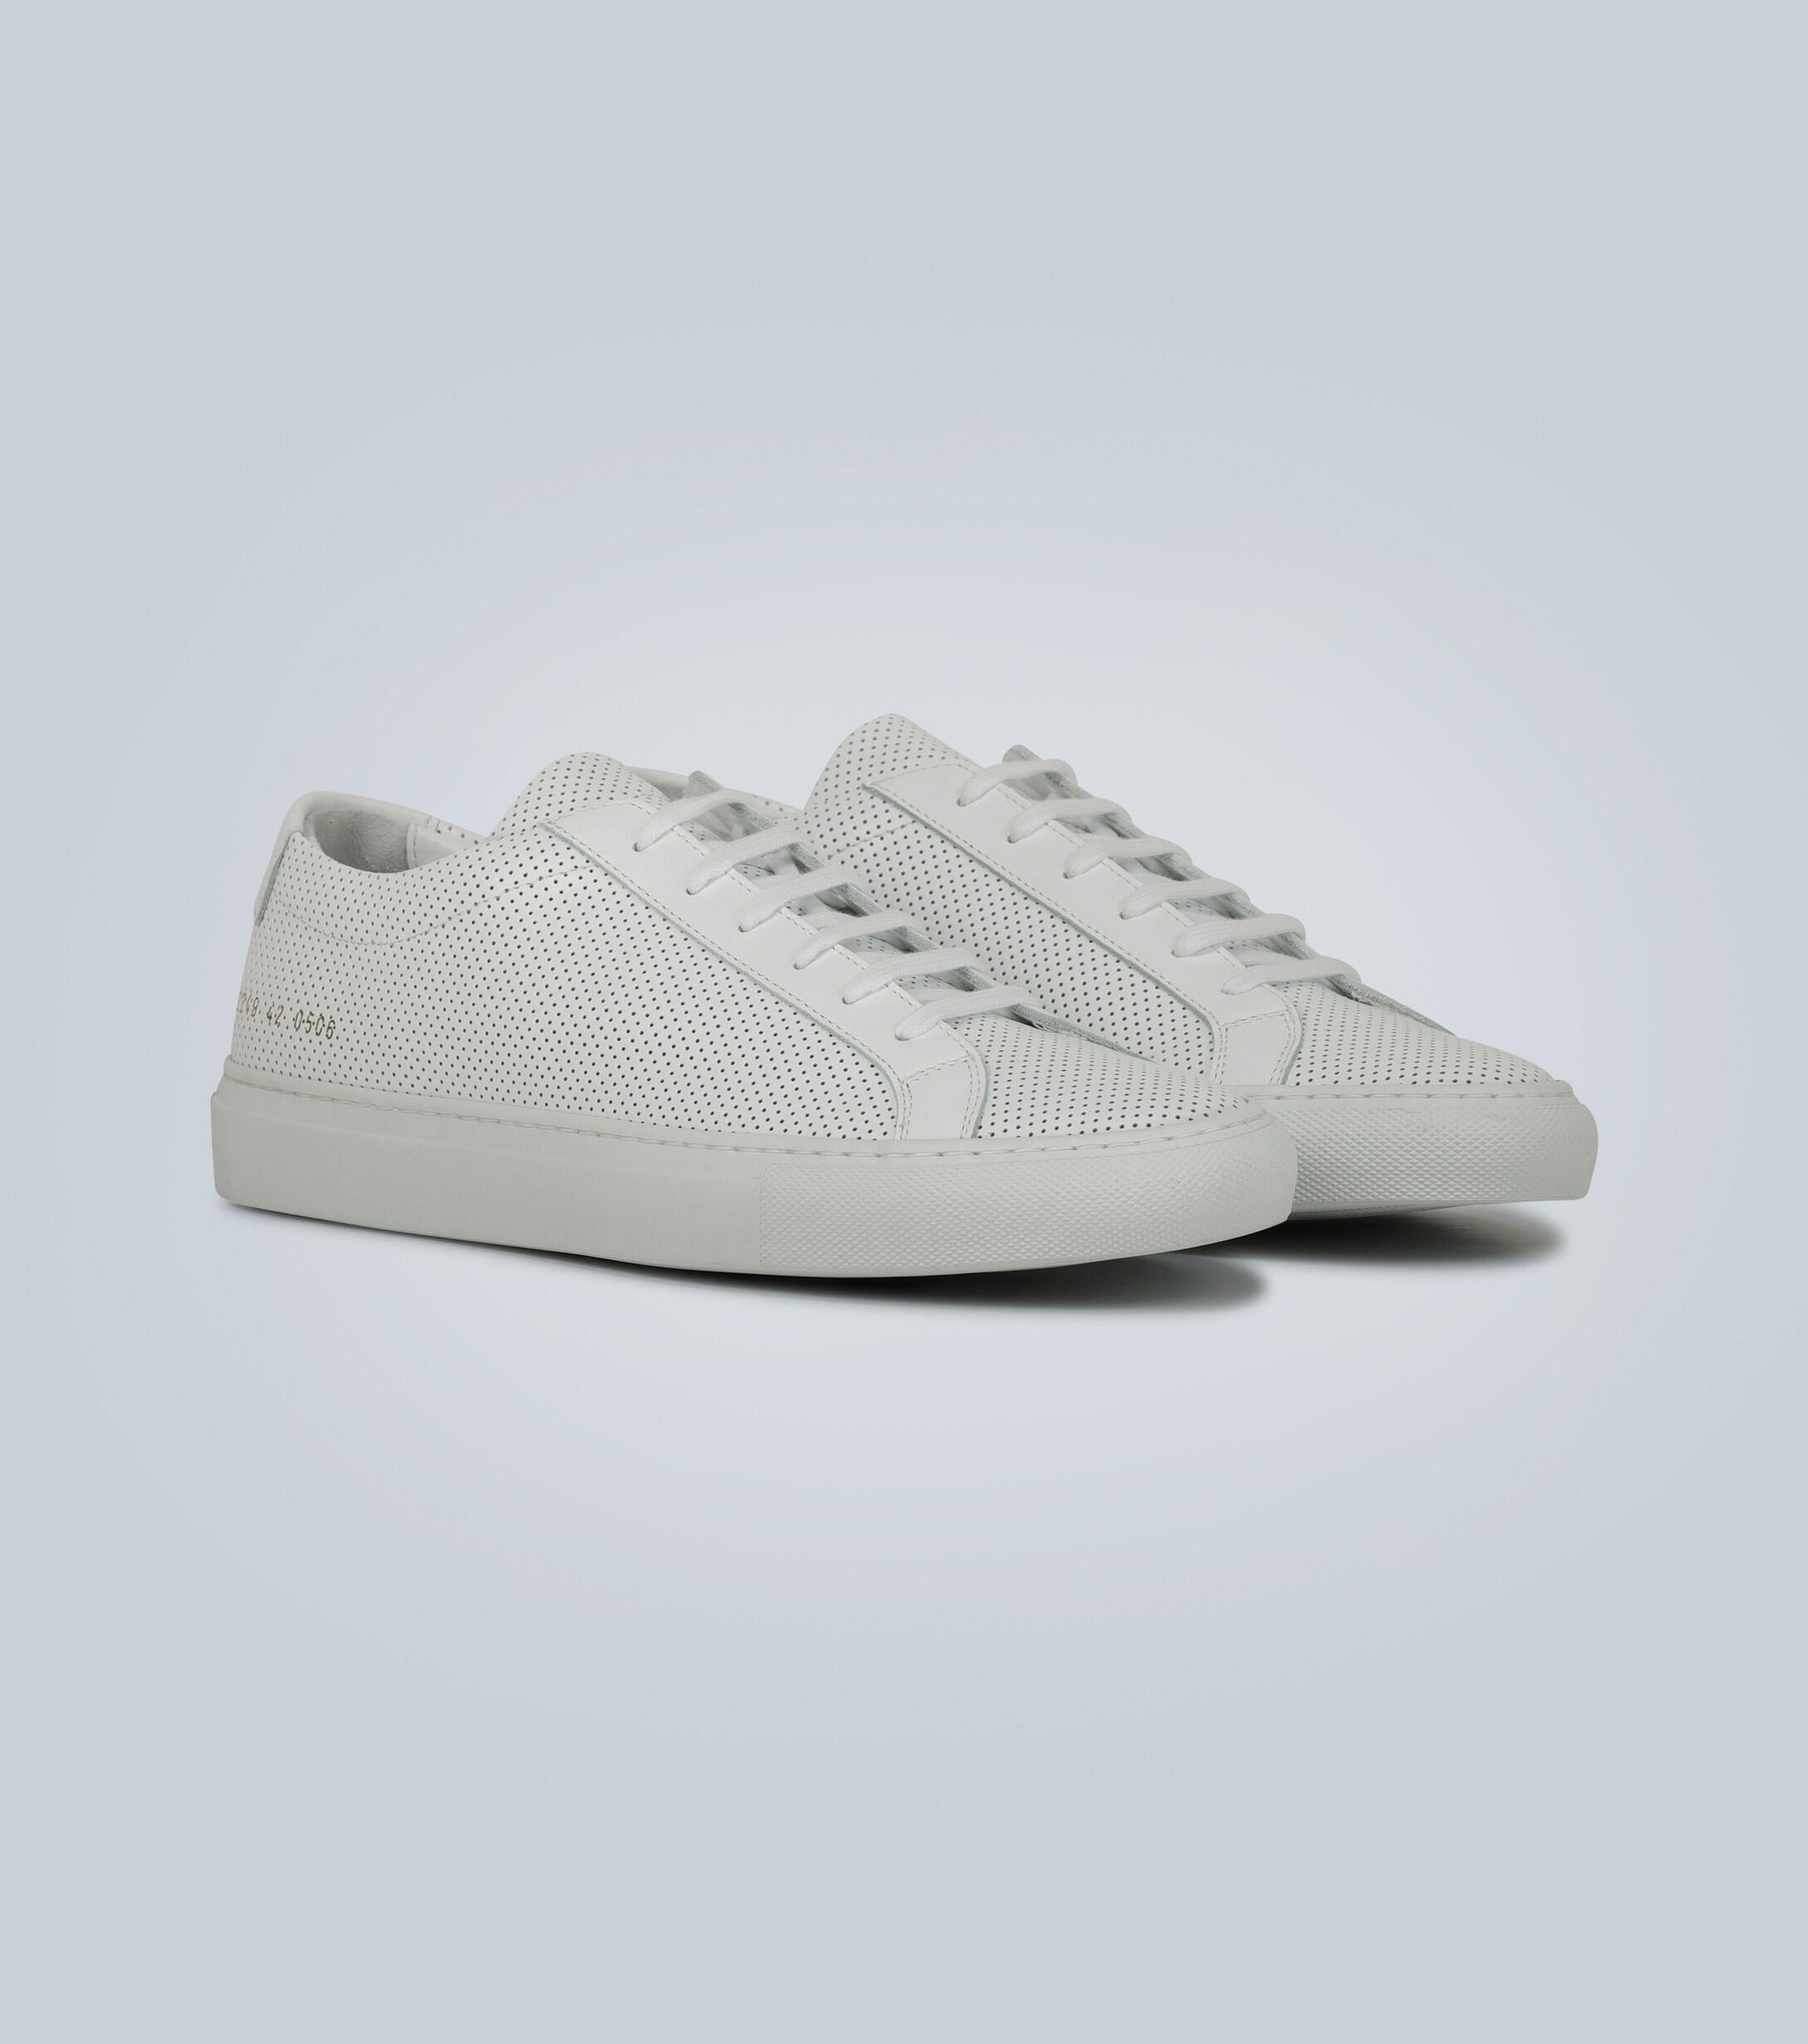 Prisionero Corte Absorbente  Common Projects Leather Original Achilles Low Sneakers in White for Men -  Save 22% - Lyst